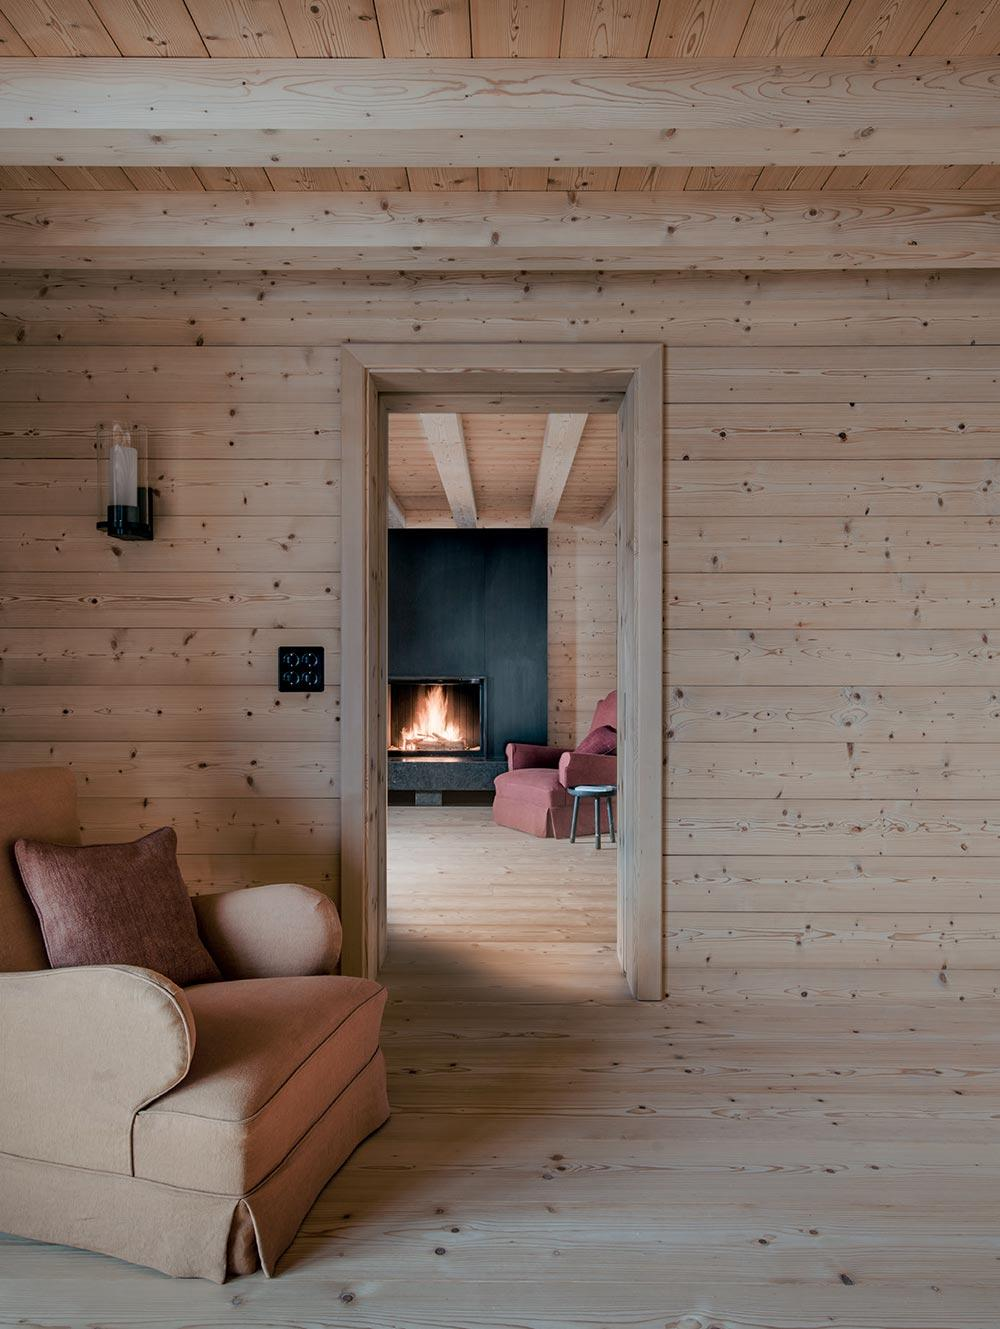 Chalet MM interior by Mike Spink